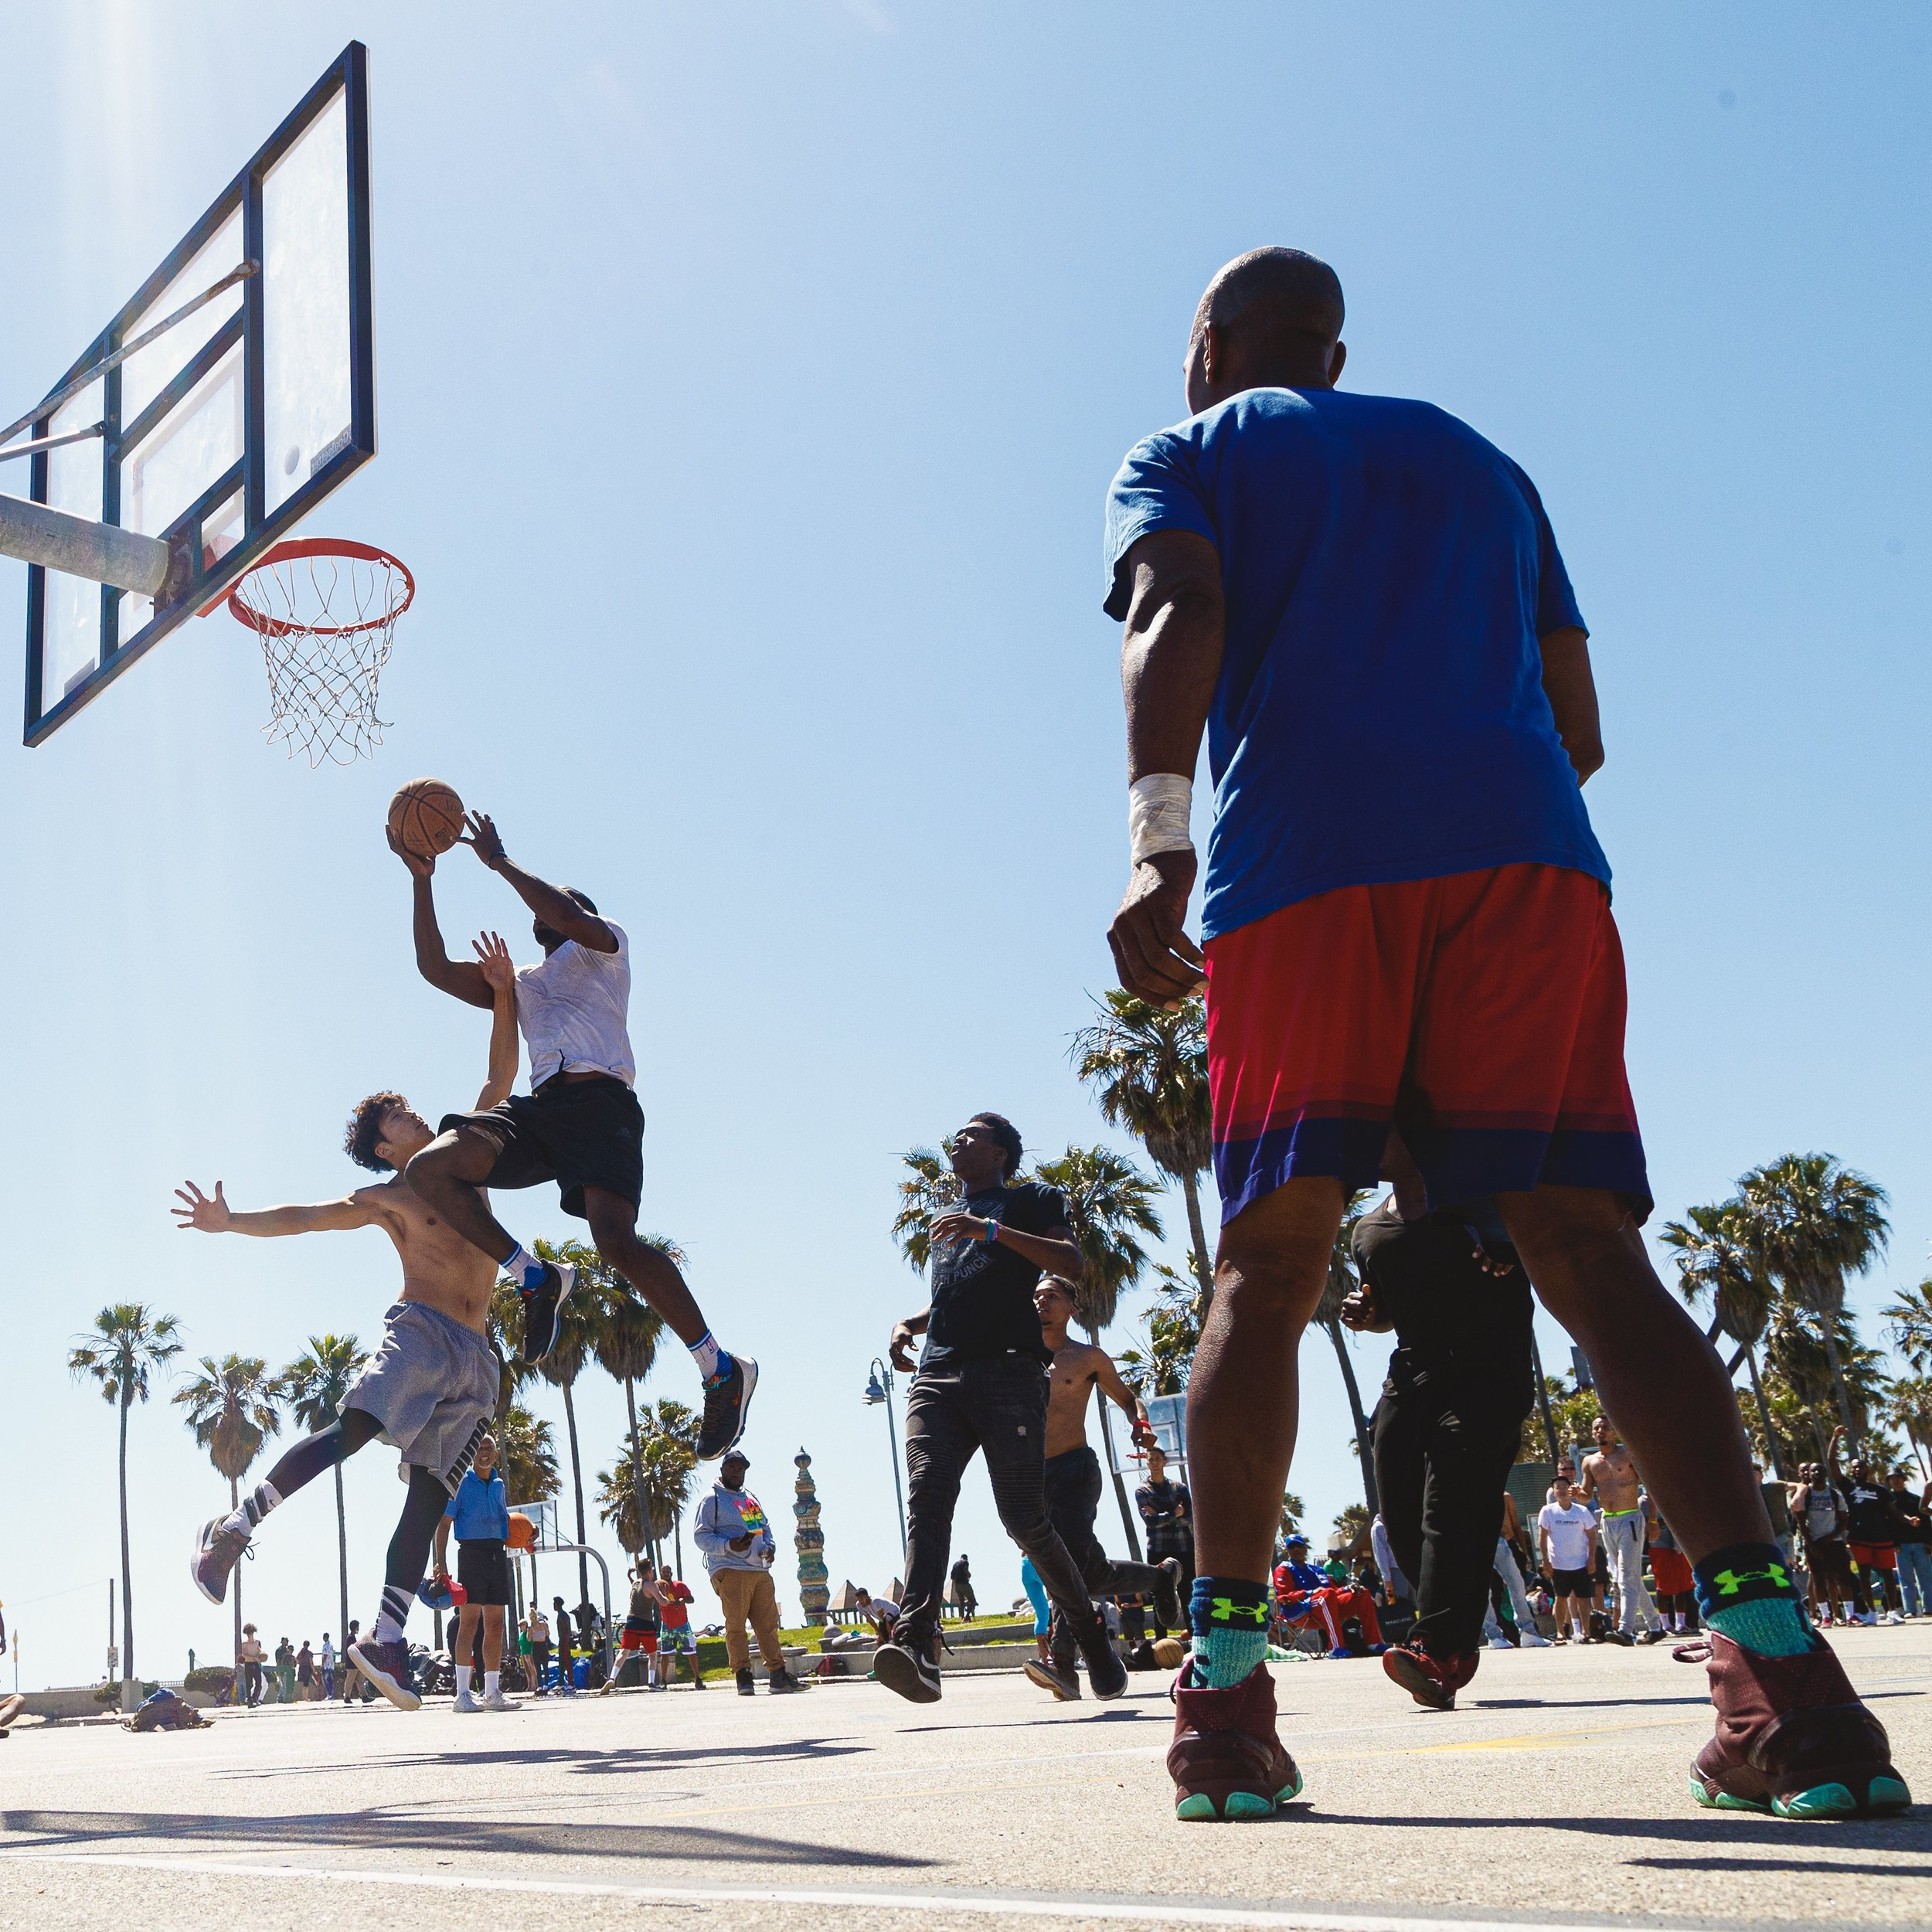 People play basketball at Venice Beach Basketball Court on May 27, 2019 in Venice Beach, Calif.. (Photo by Bryan Bennett)